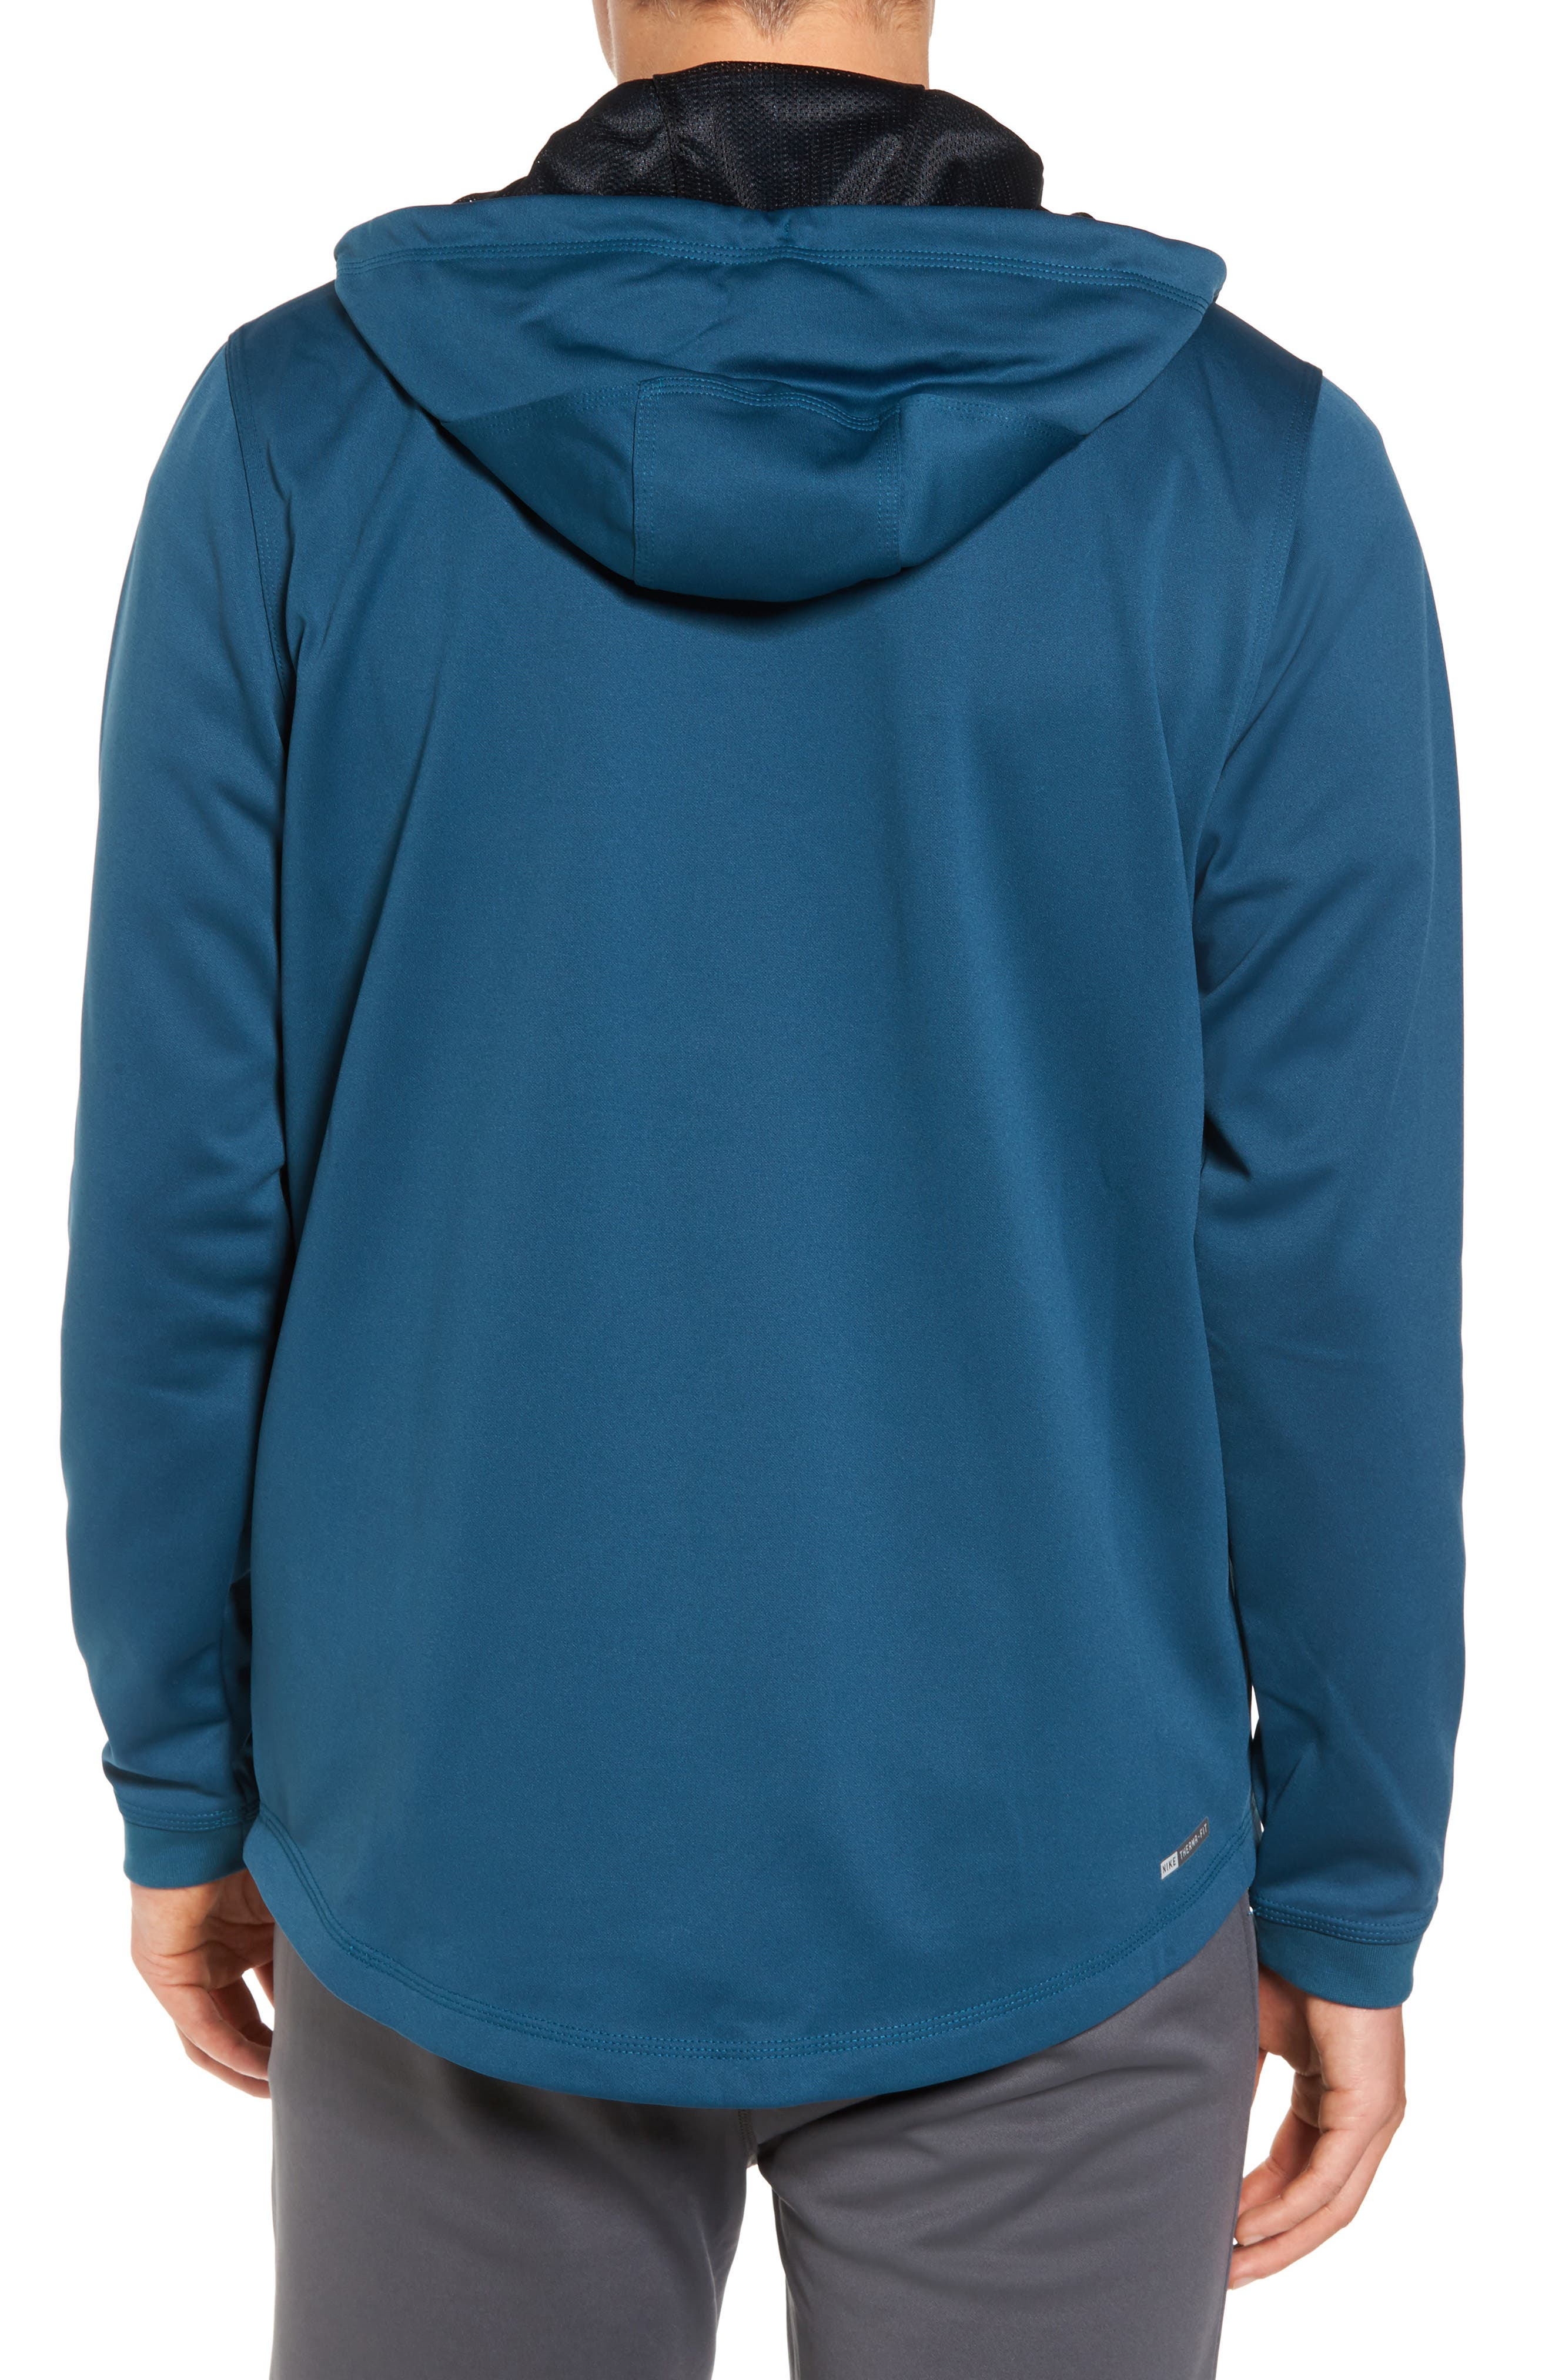 Therma Protect Zip Hoodie,                             Alternate thumbnail 2, color,                             Space Blue